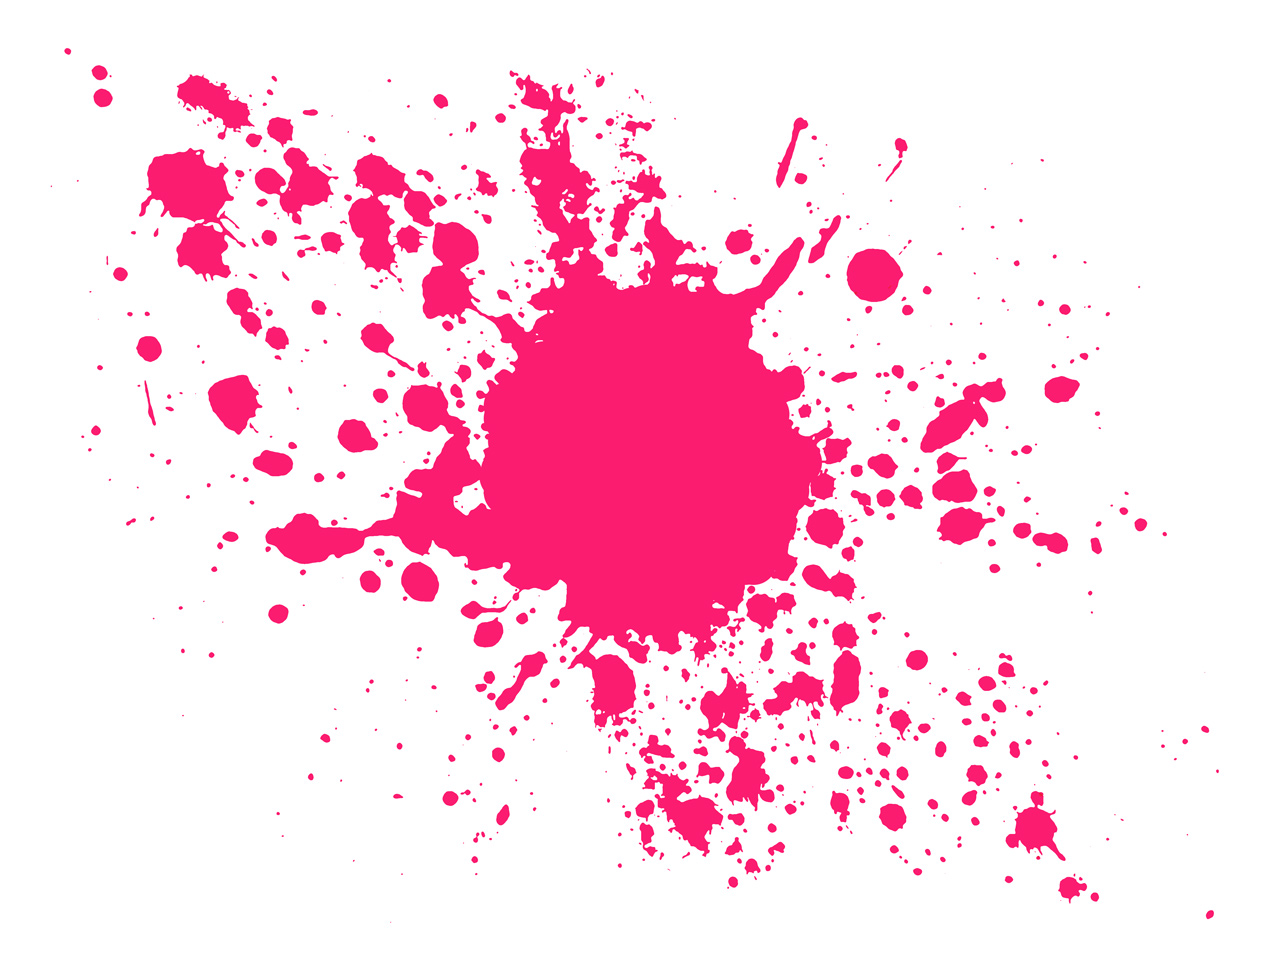 Pink Splash PPT Backgrounds